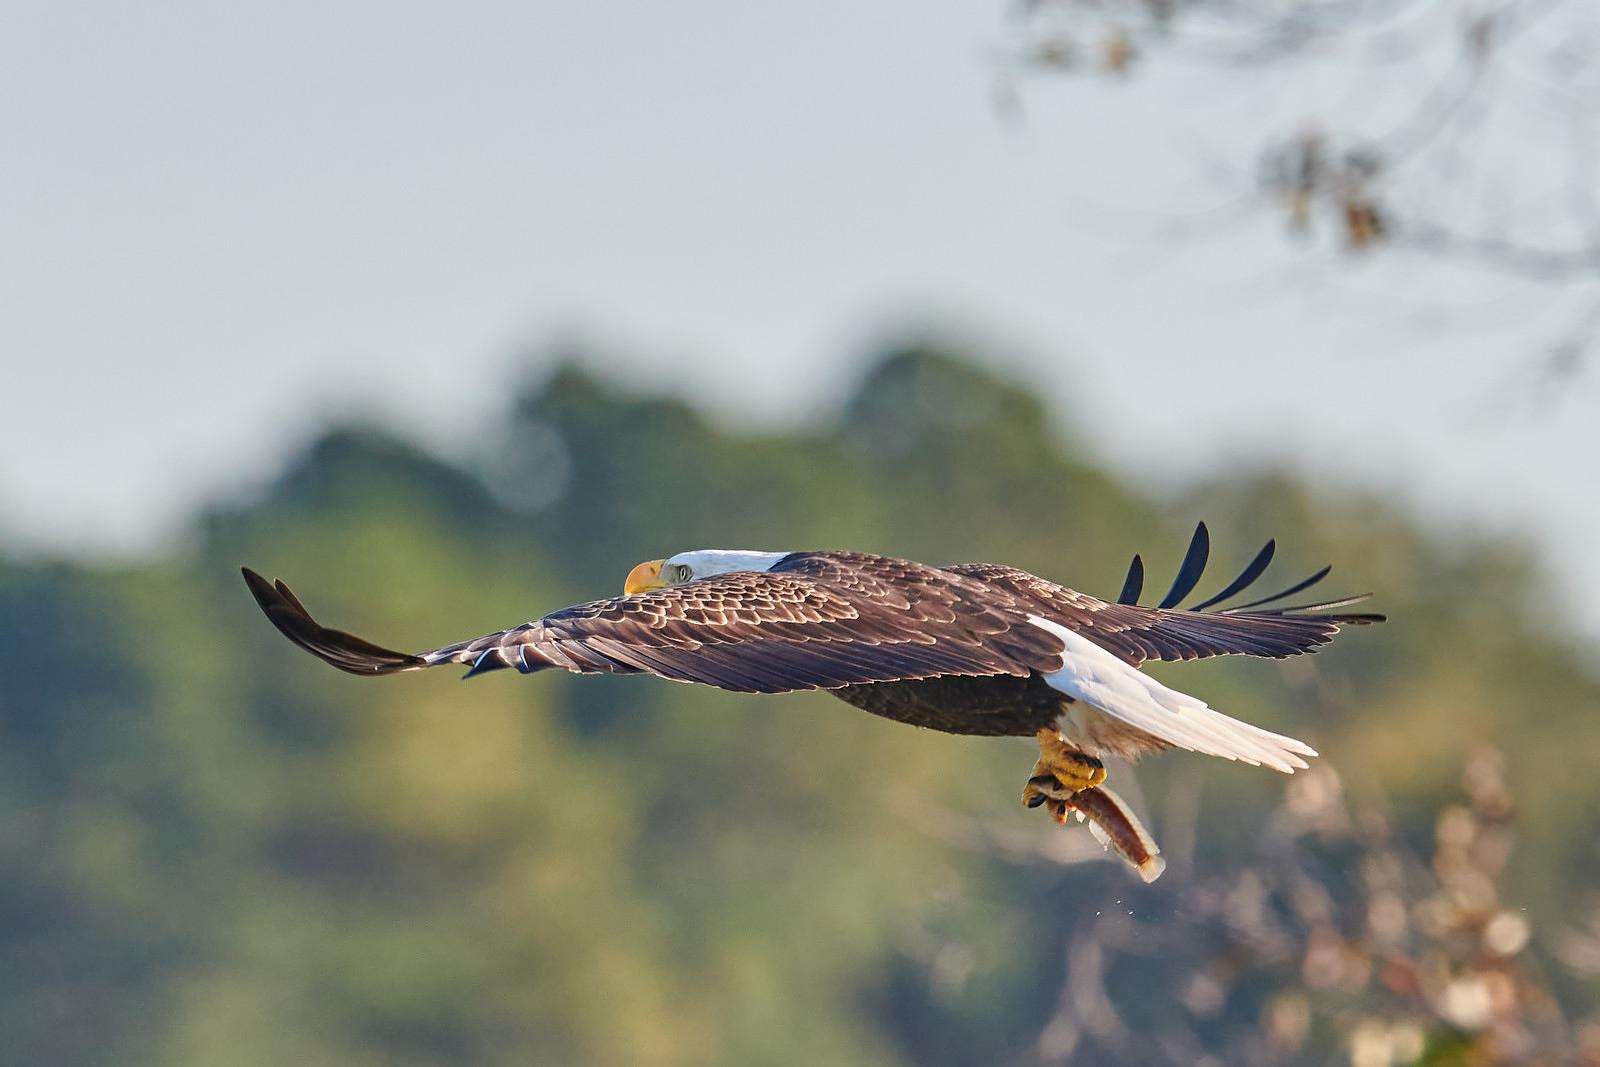 Mature Bald Eagle with Snakehead Fish | Color Photograhic Print